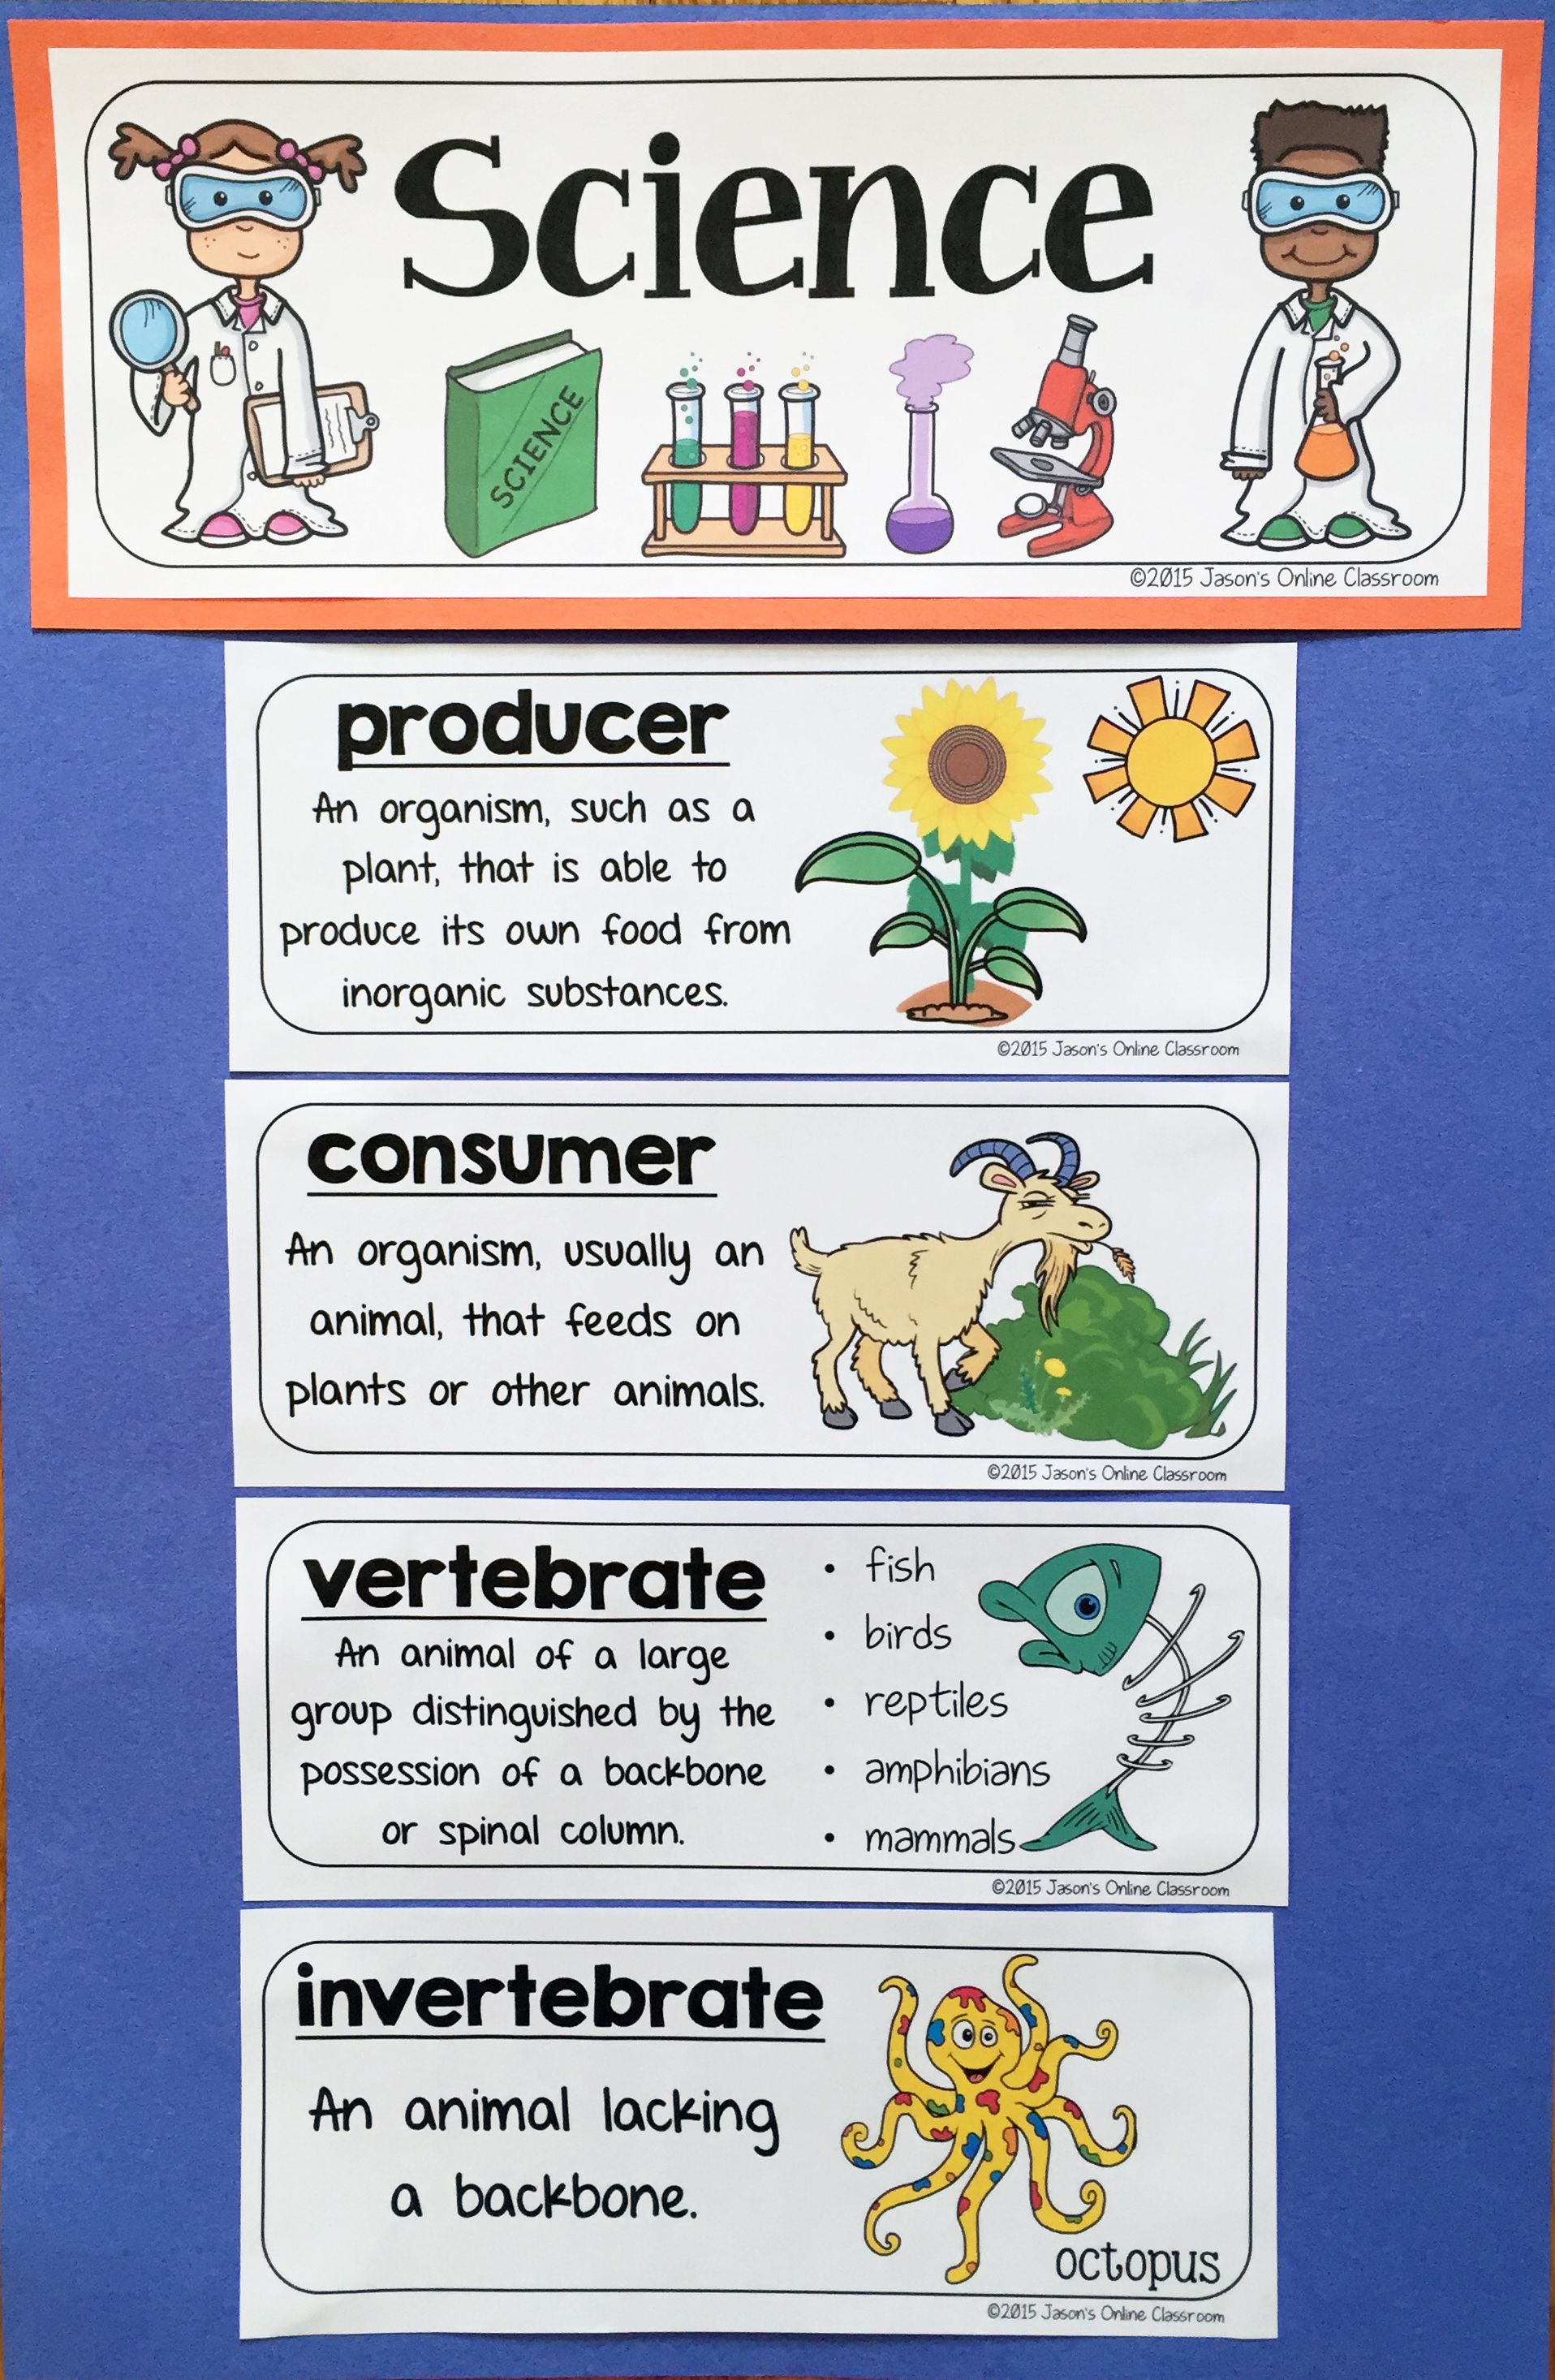 Science Vocabulary With Images